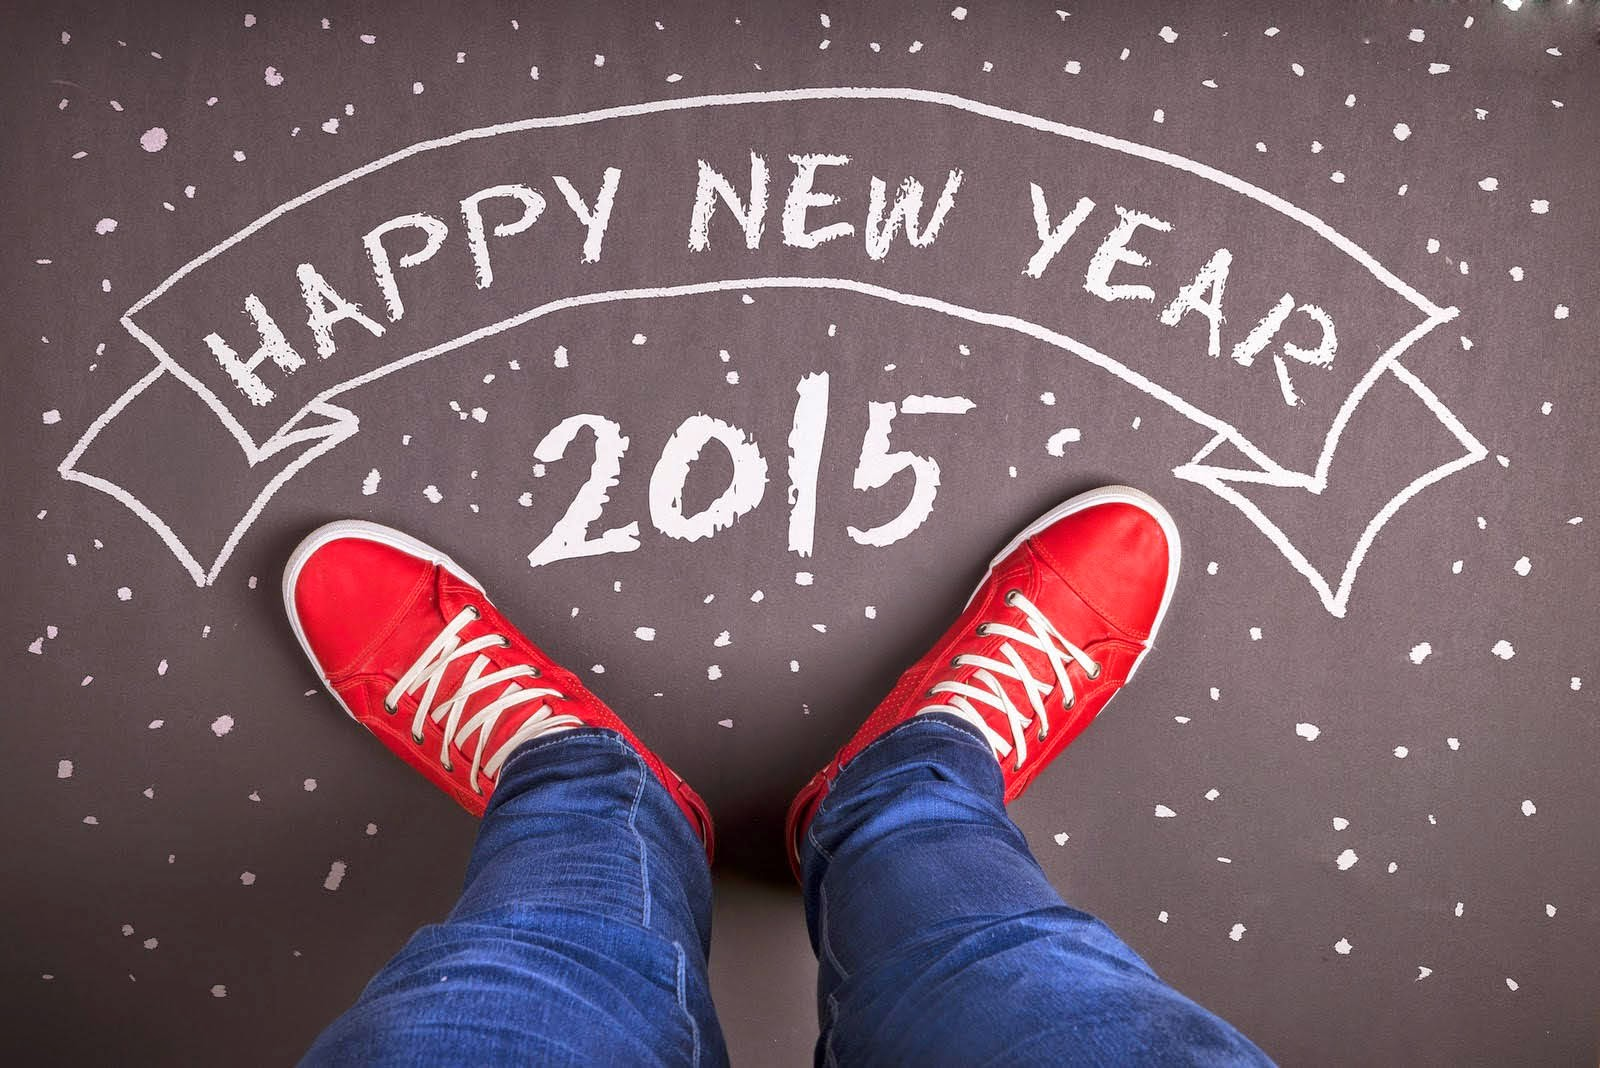 Happy New Year 2015 Best Image Free Download